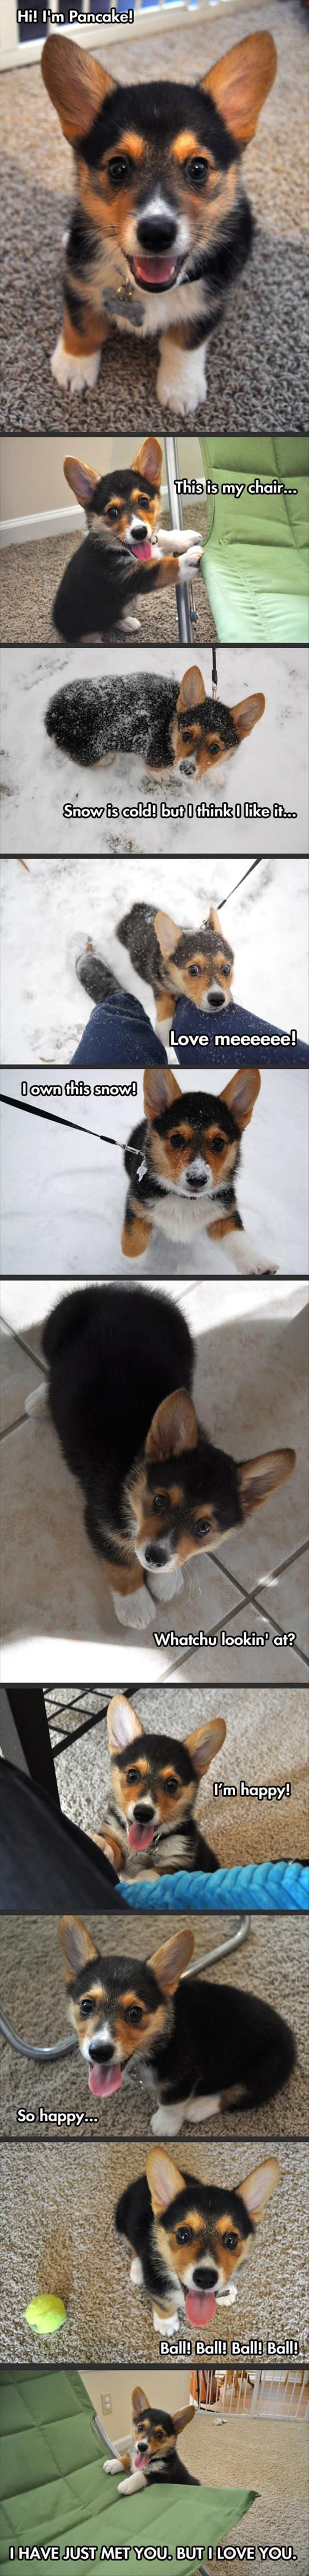 I need it.: Corgis, Cuteness Overload, Happiest Dog, Dogs, Funny Pictures, Puppy, Pancake, Animal